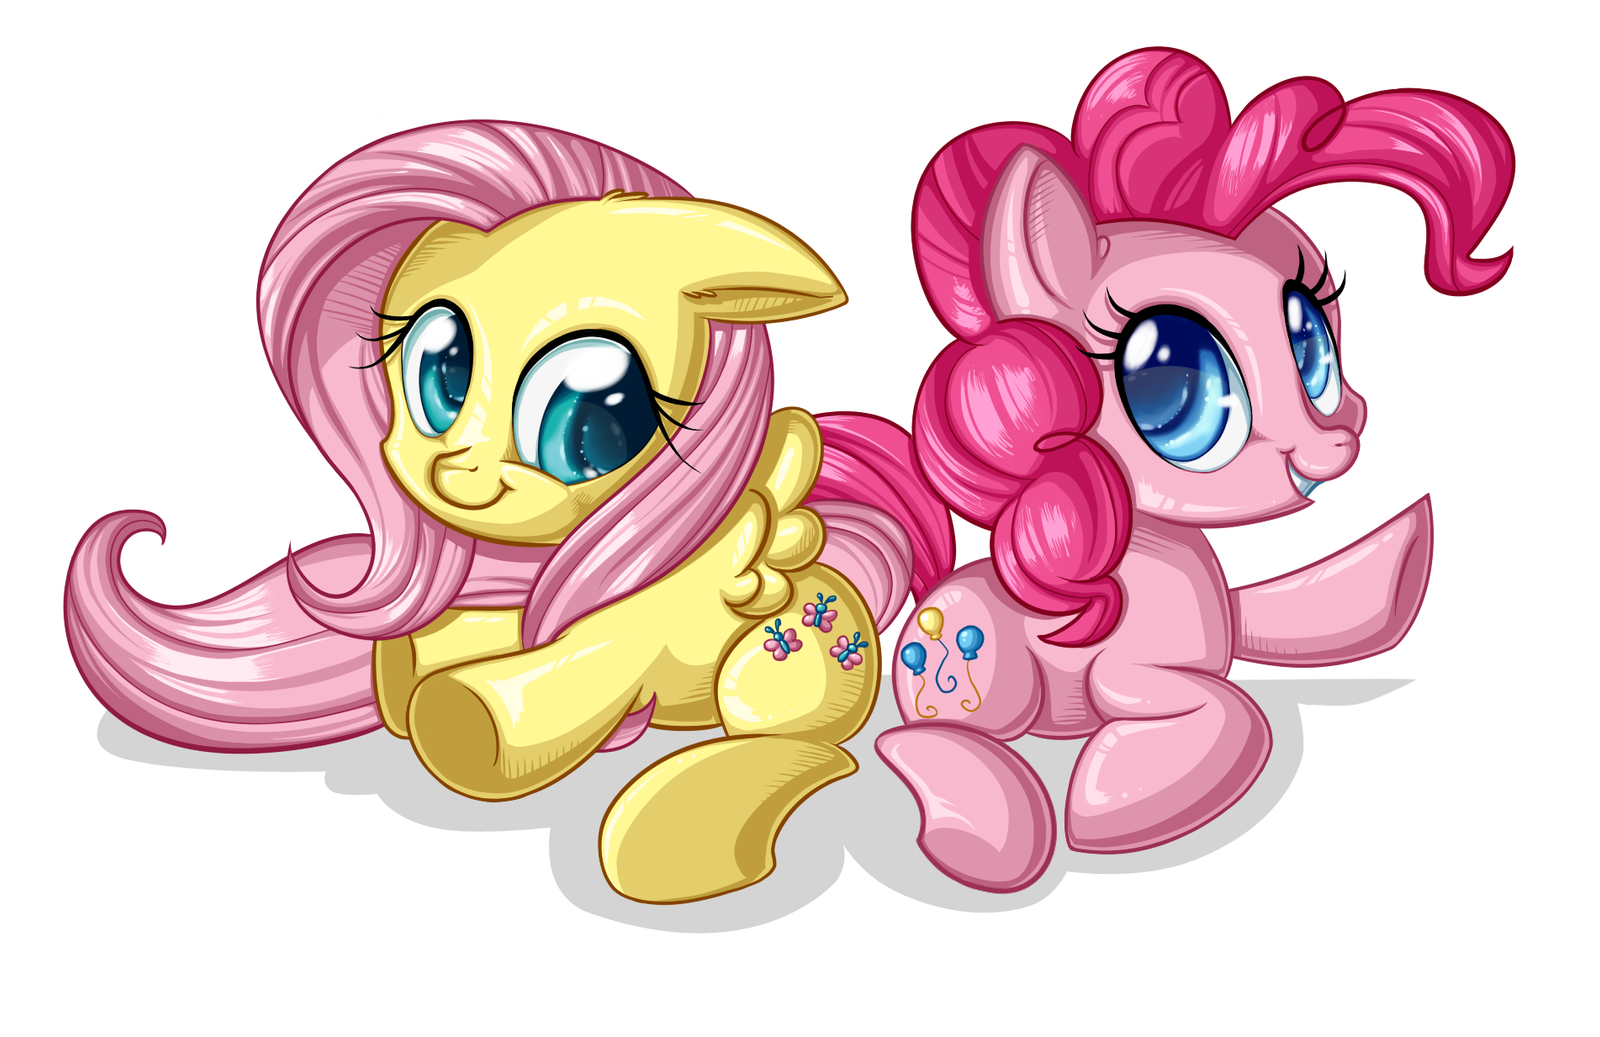 Chibis Fluttershy and Pinkie Pie :: YaY! by PauuhAnthoTheCat